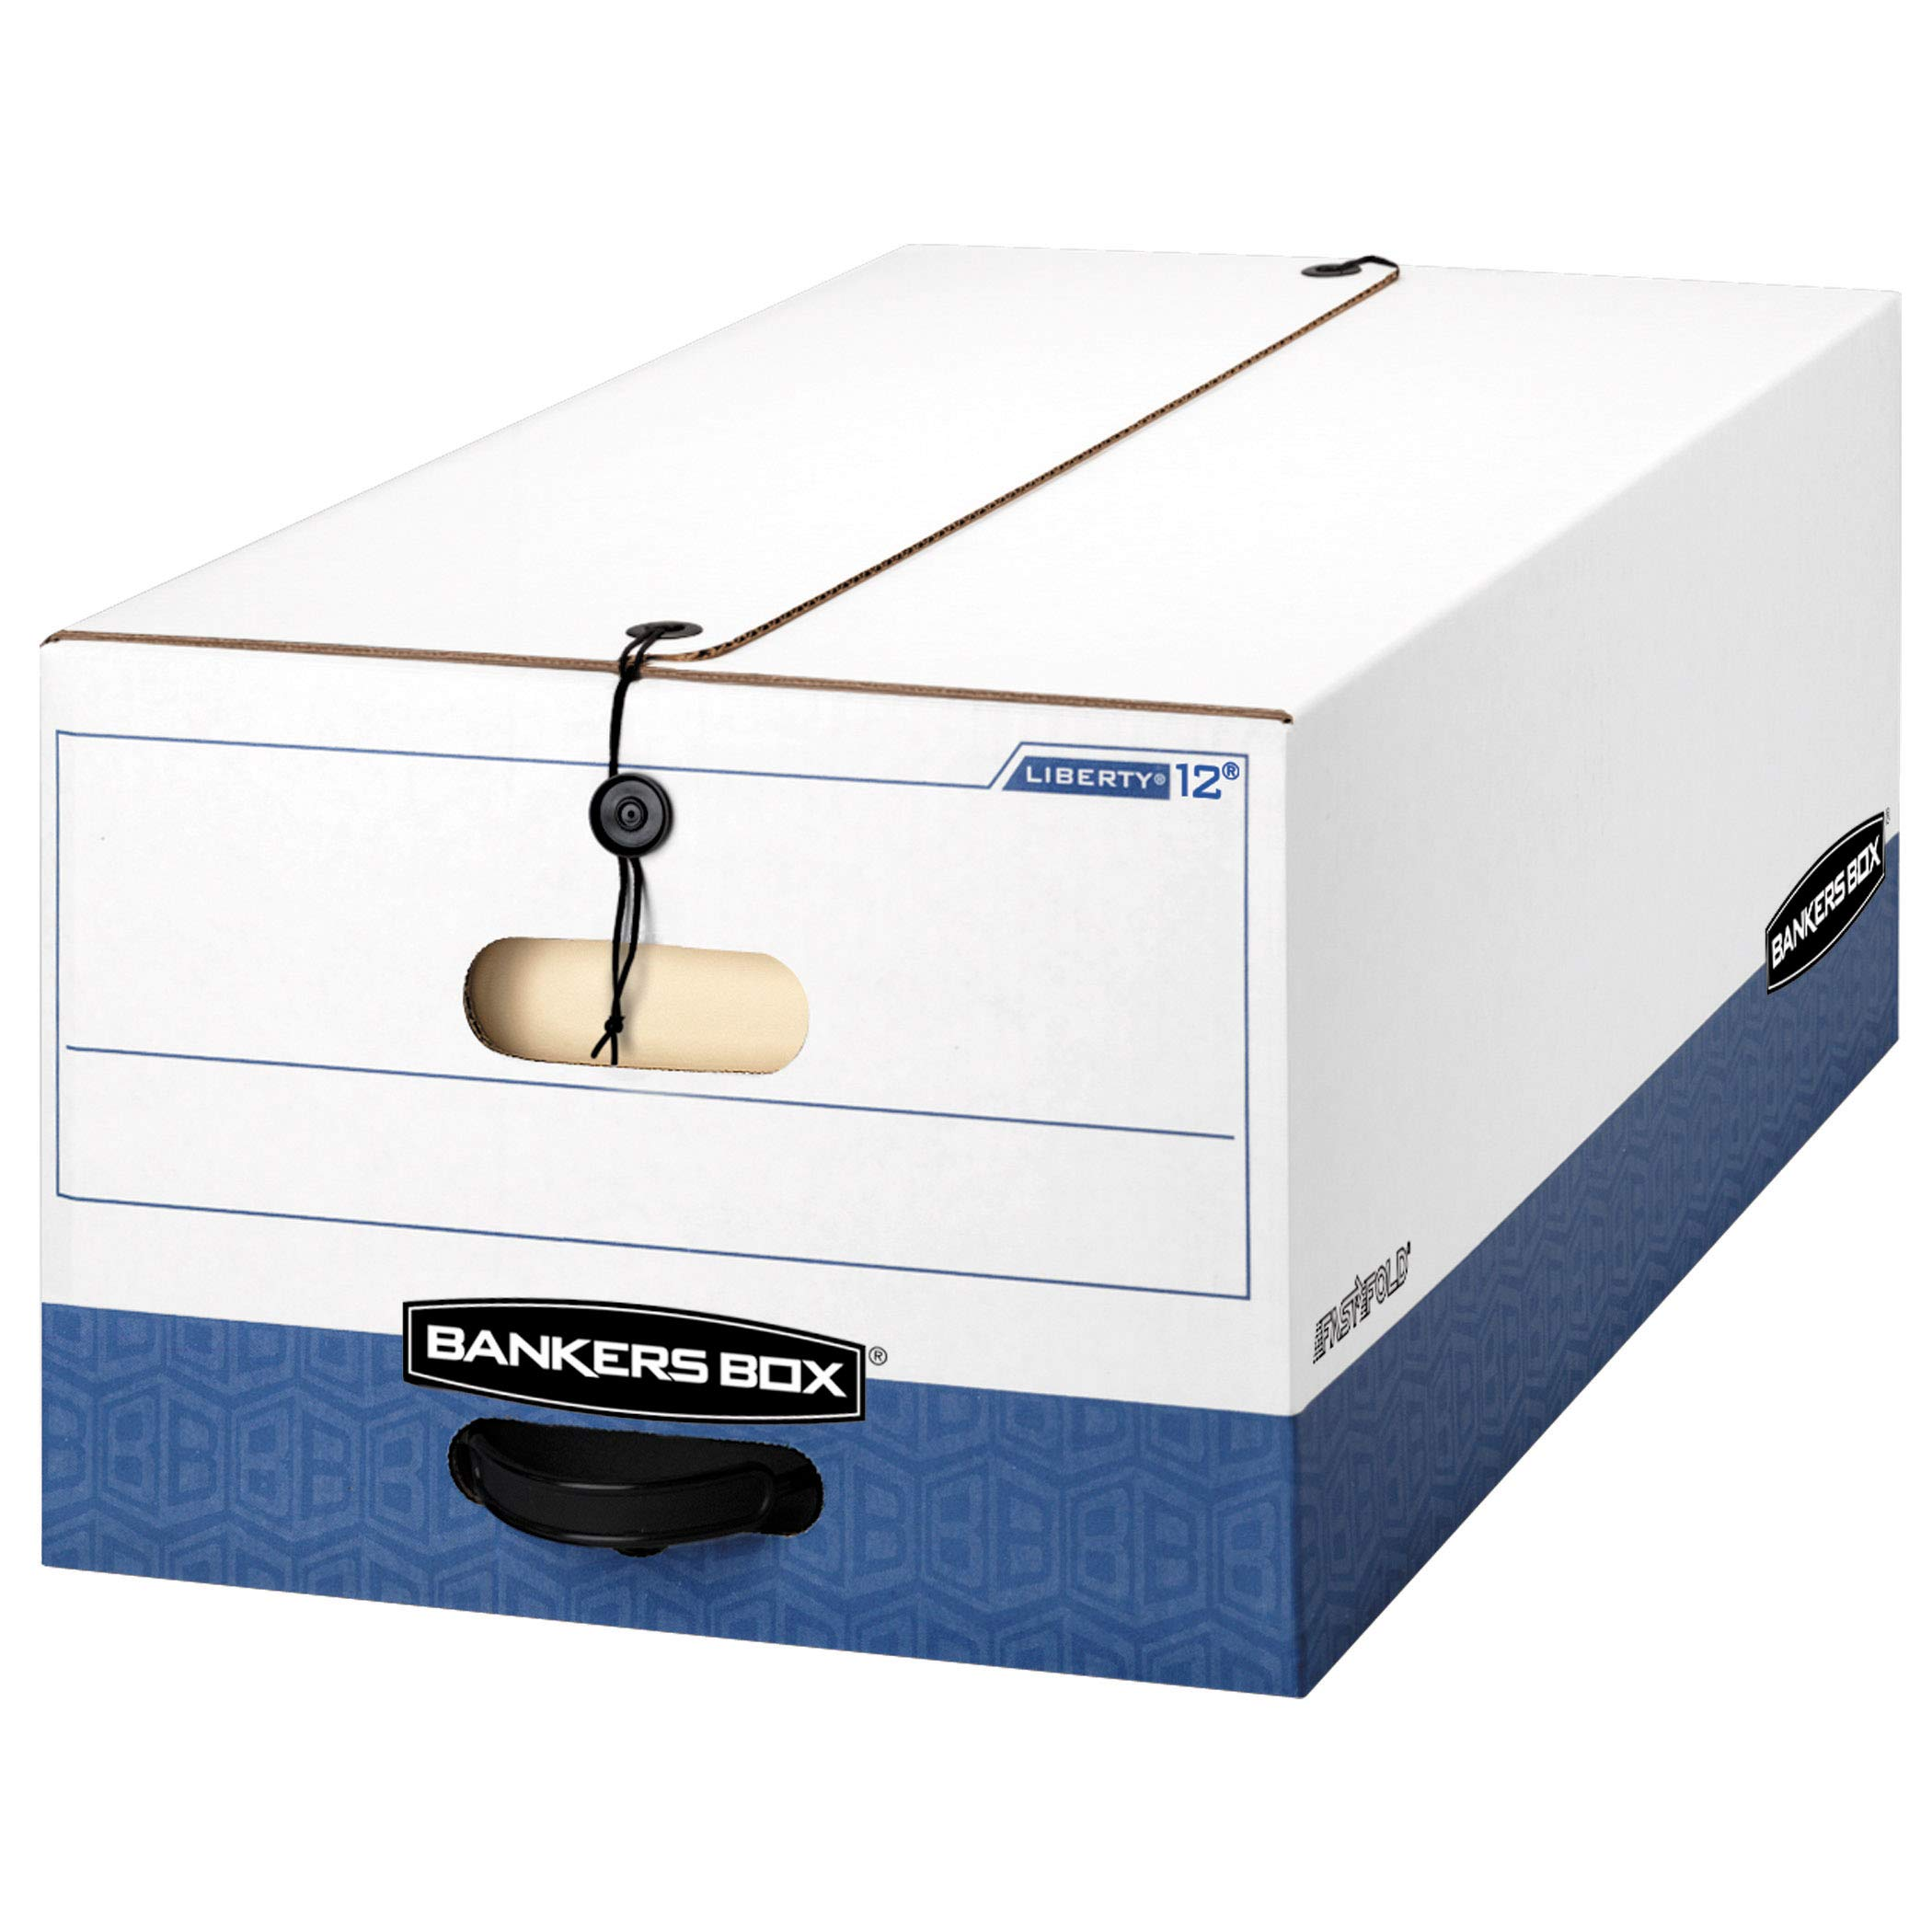 Bankers Box LIBERTY Heavy-Duty Storage Boxes, FastFold, String and Button, Legal, Case of 12 (00012) by Bankers Box